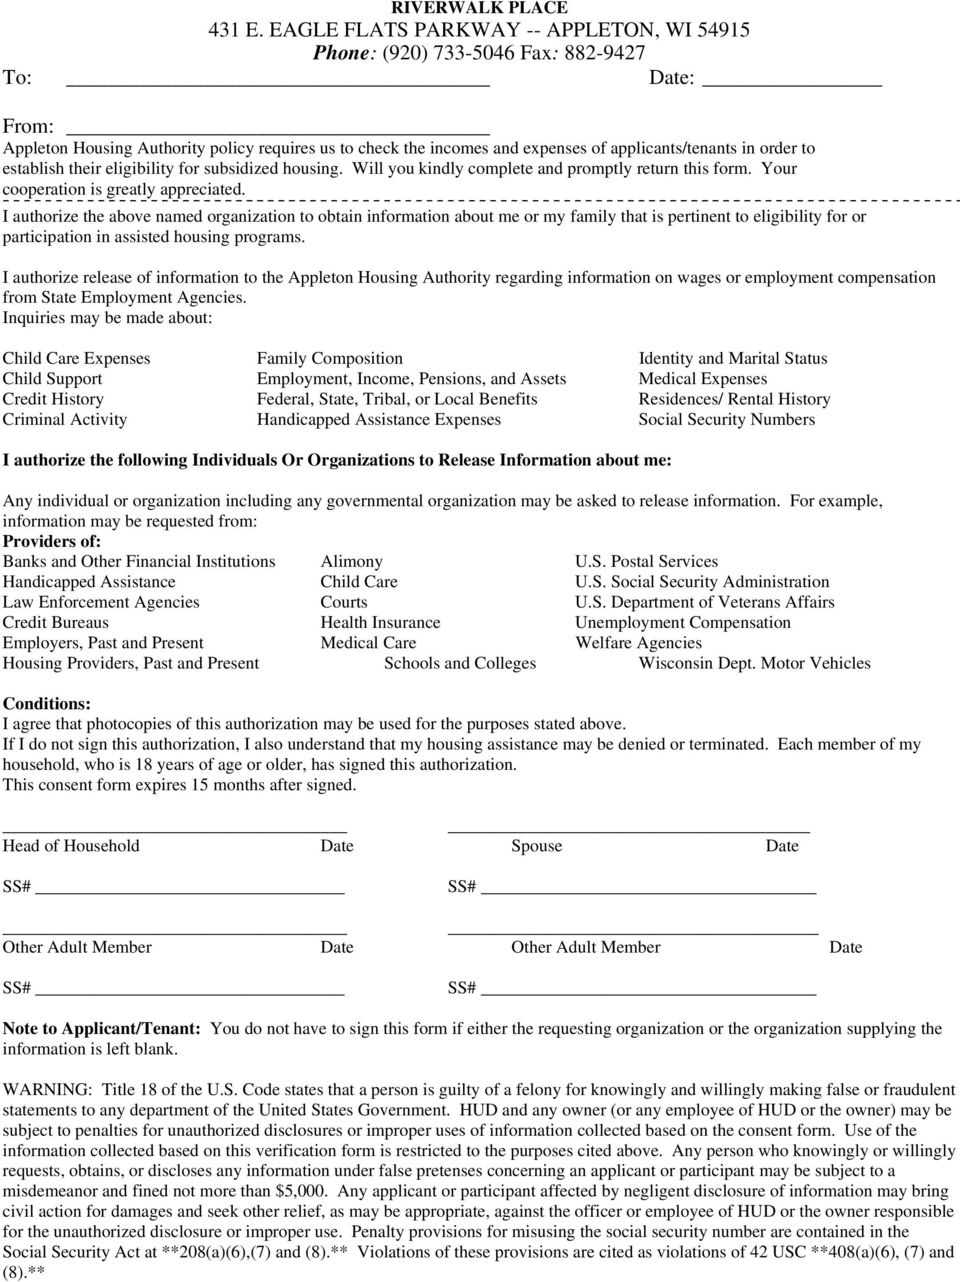 APPLICATION FOR ADMISSION TO RIVERWALK PLACE  If you need